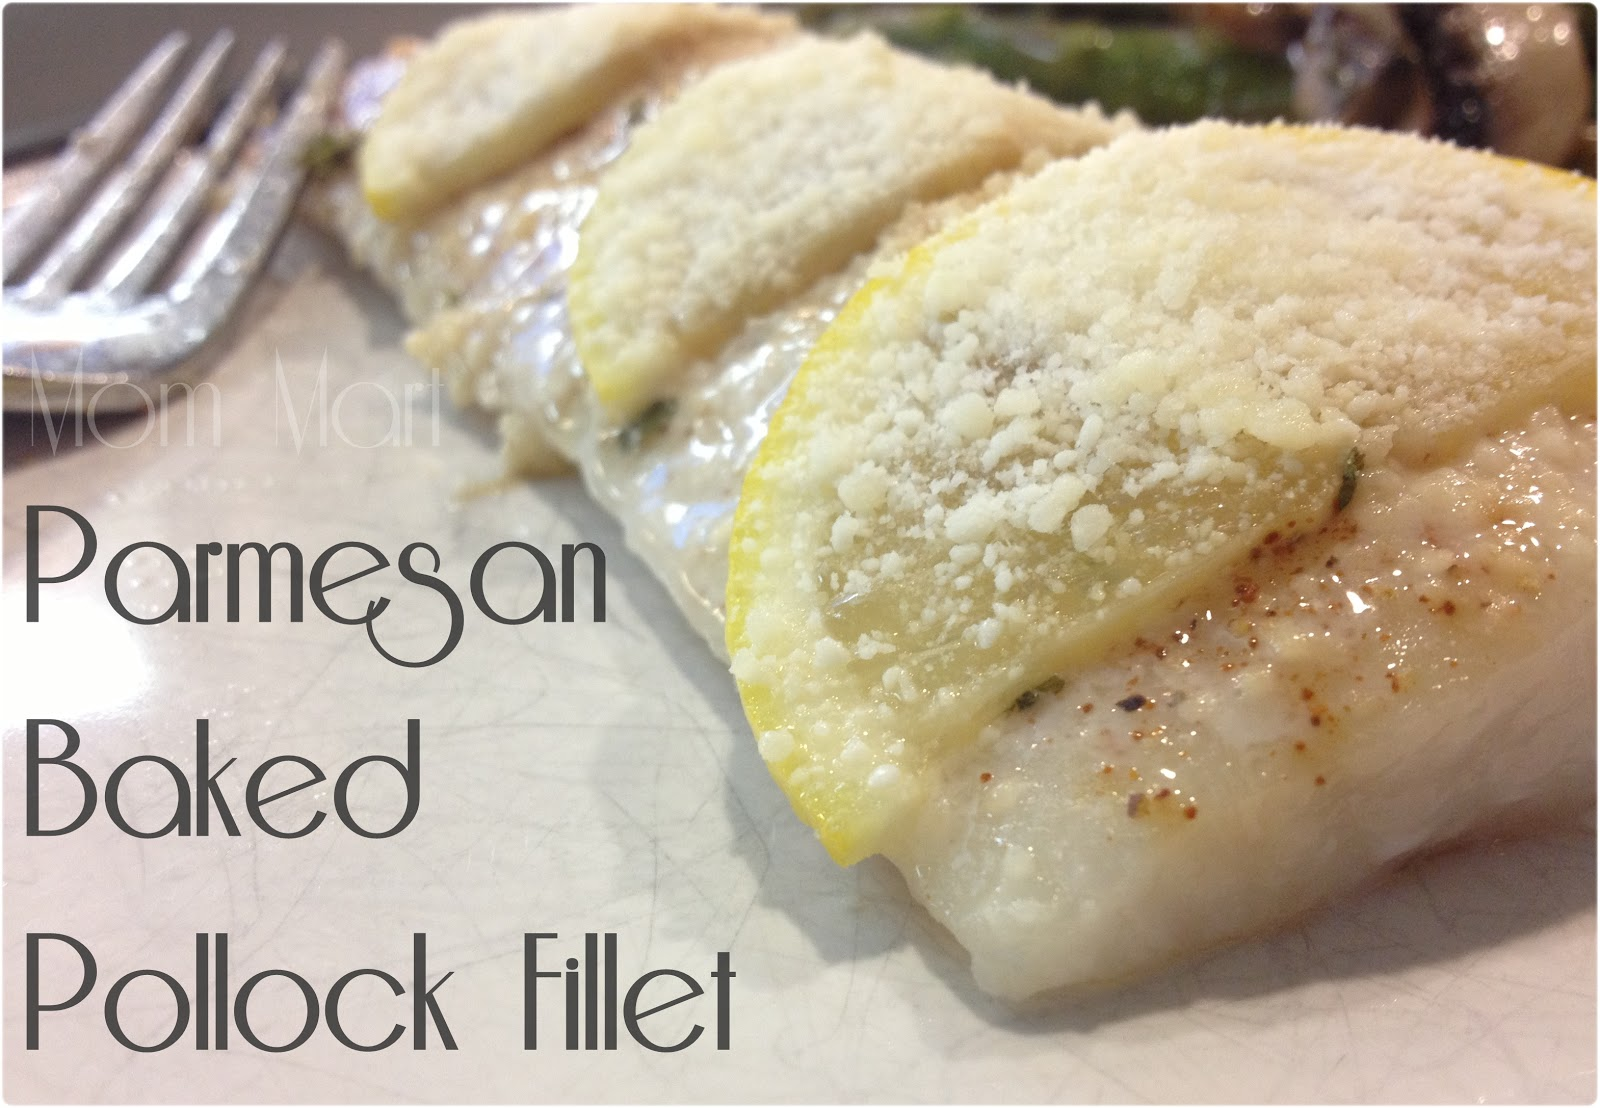 Grilled pollock. Cooking recipes 40